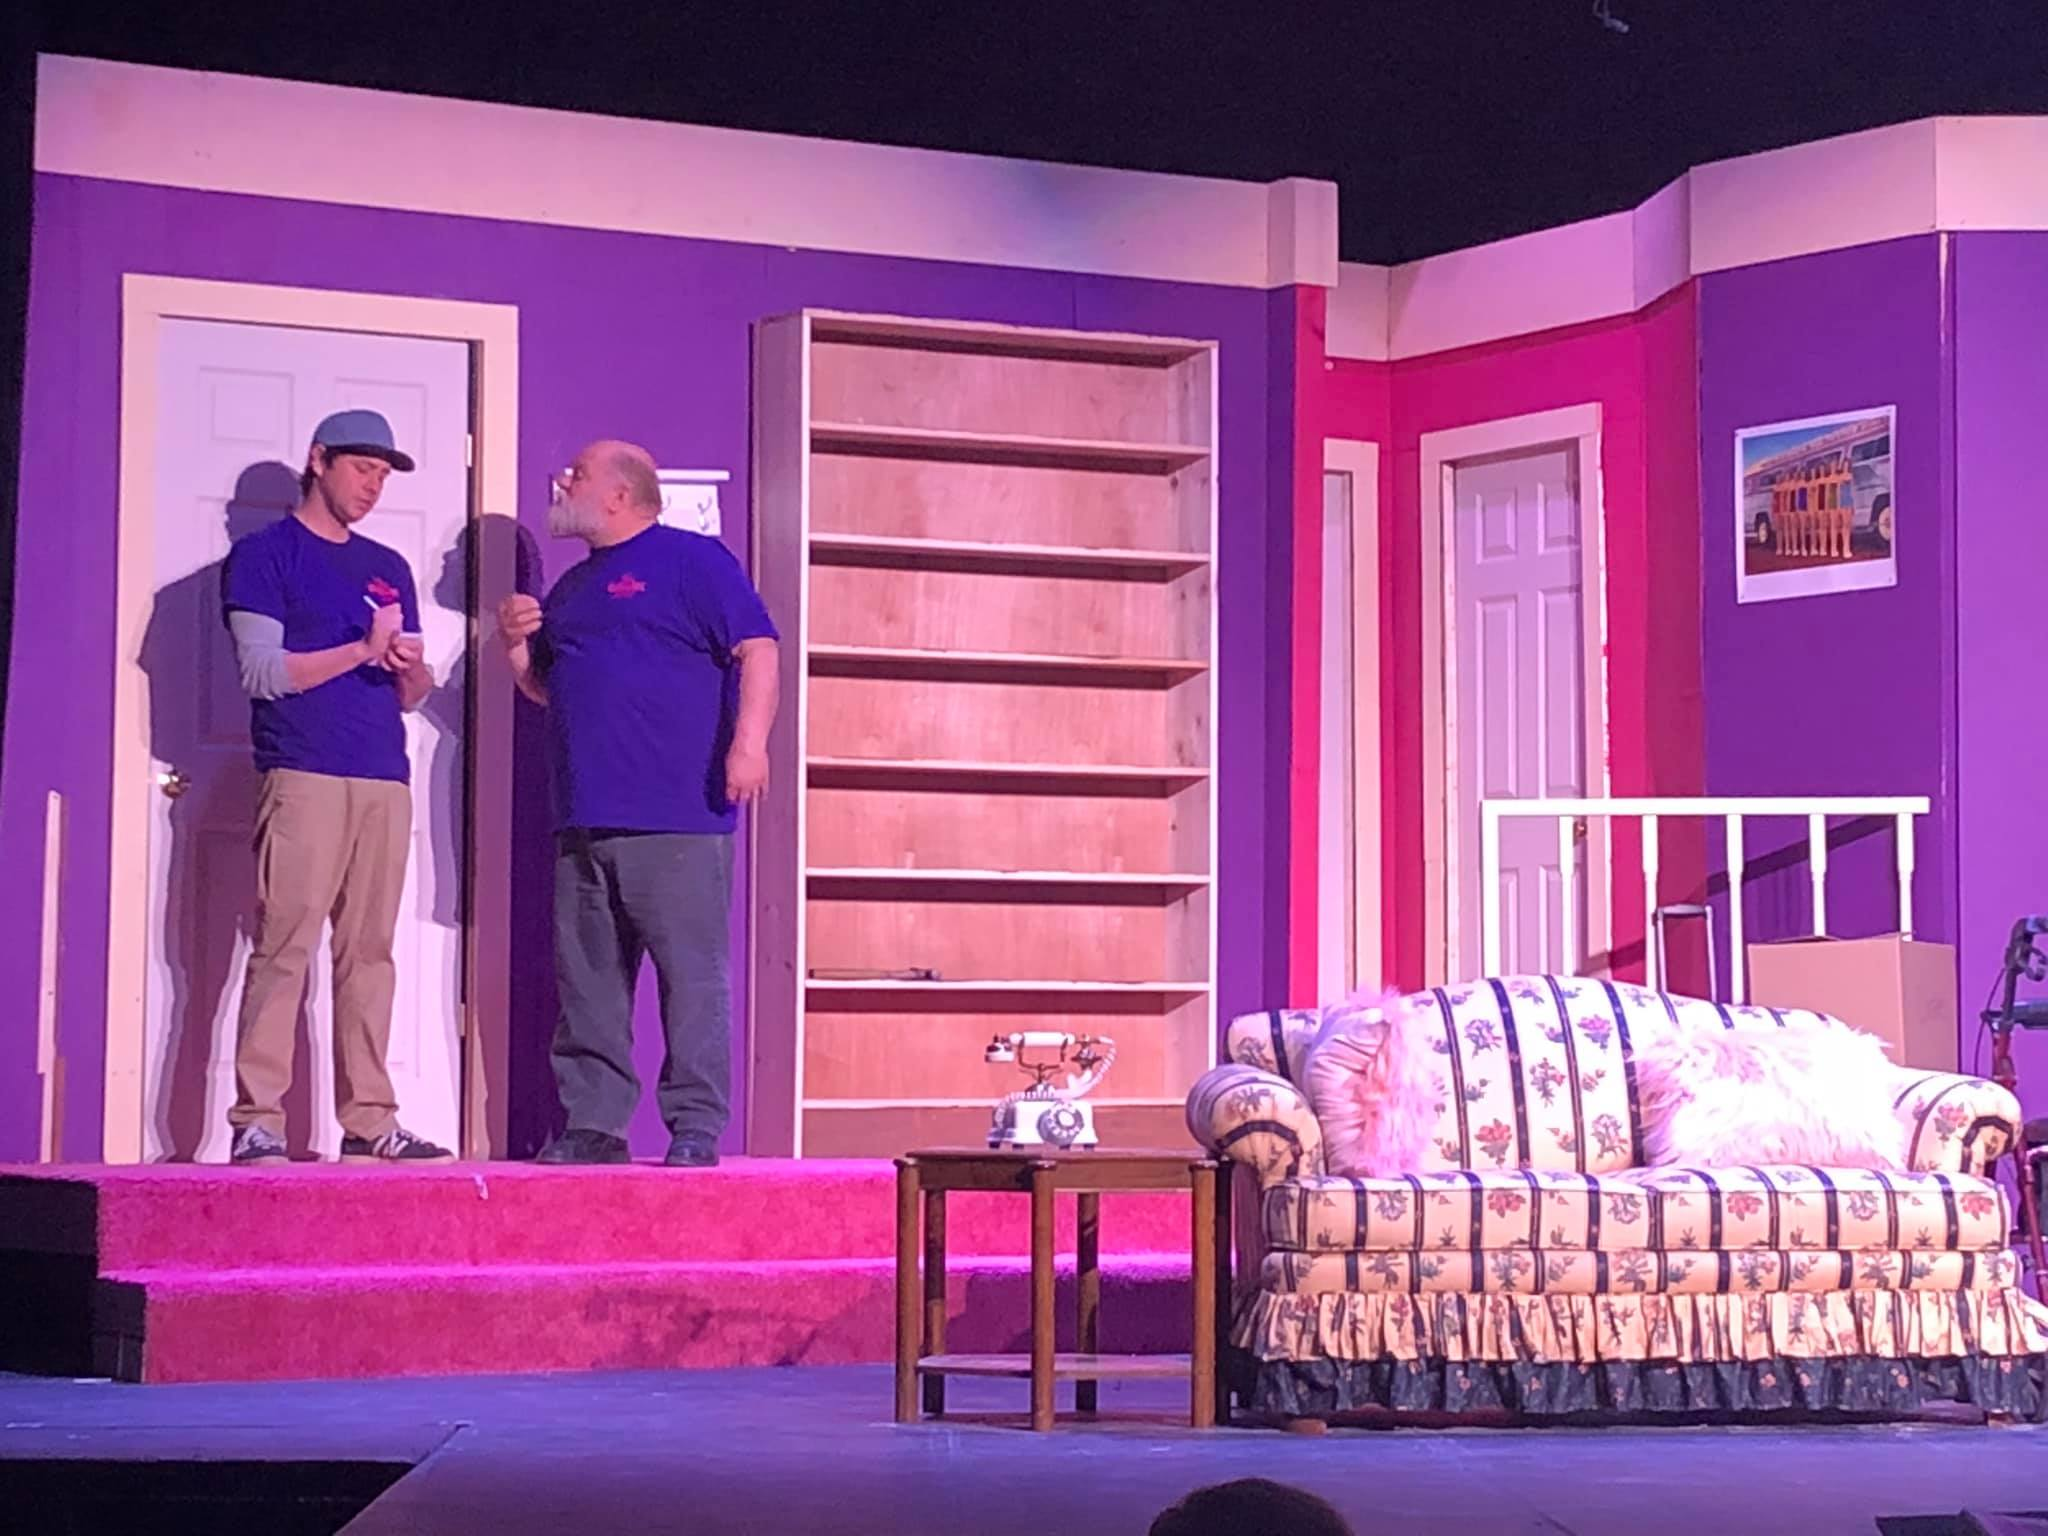 stage set in pinks and purples with 2 male actors wearing blue shirts